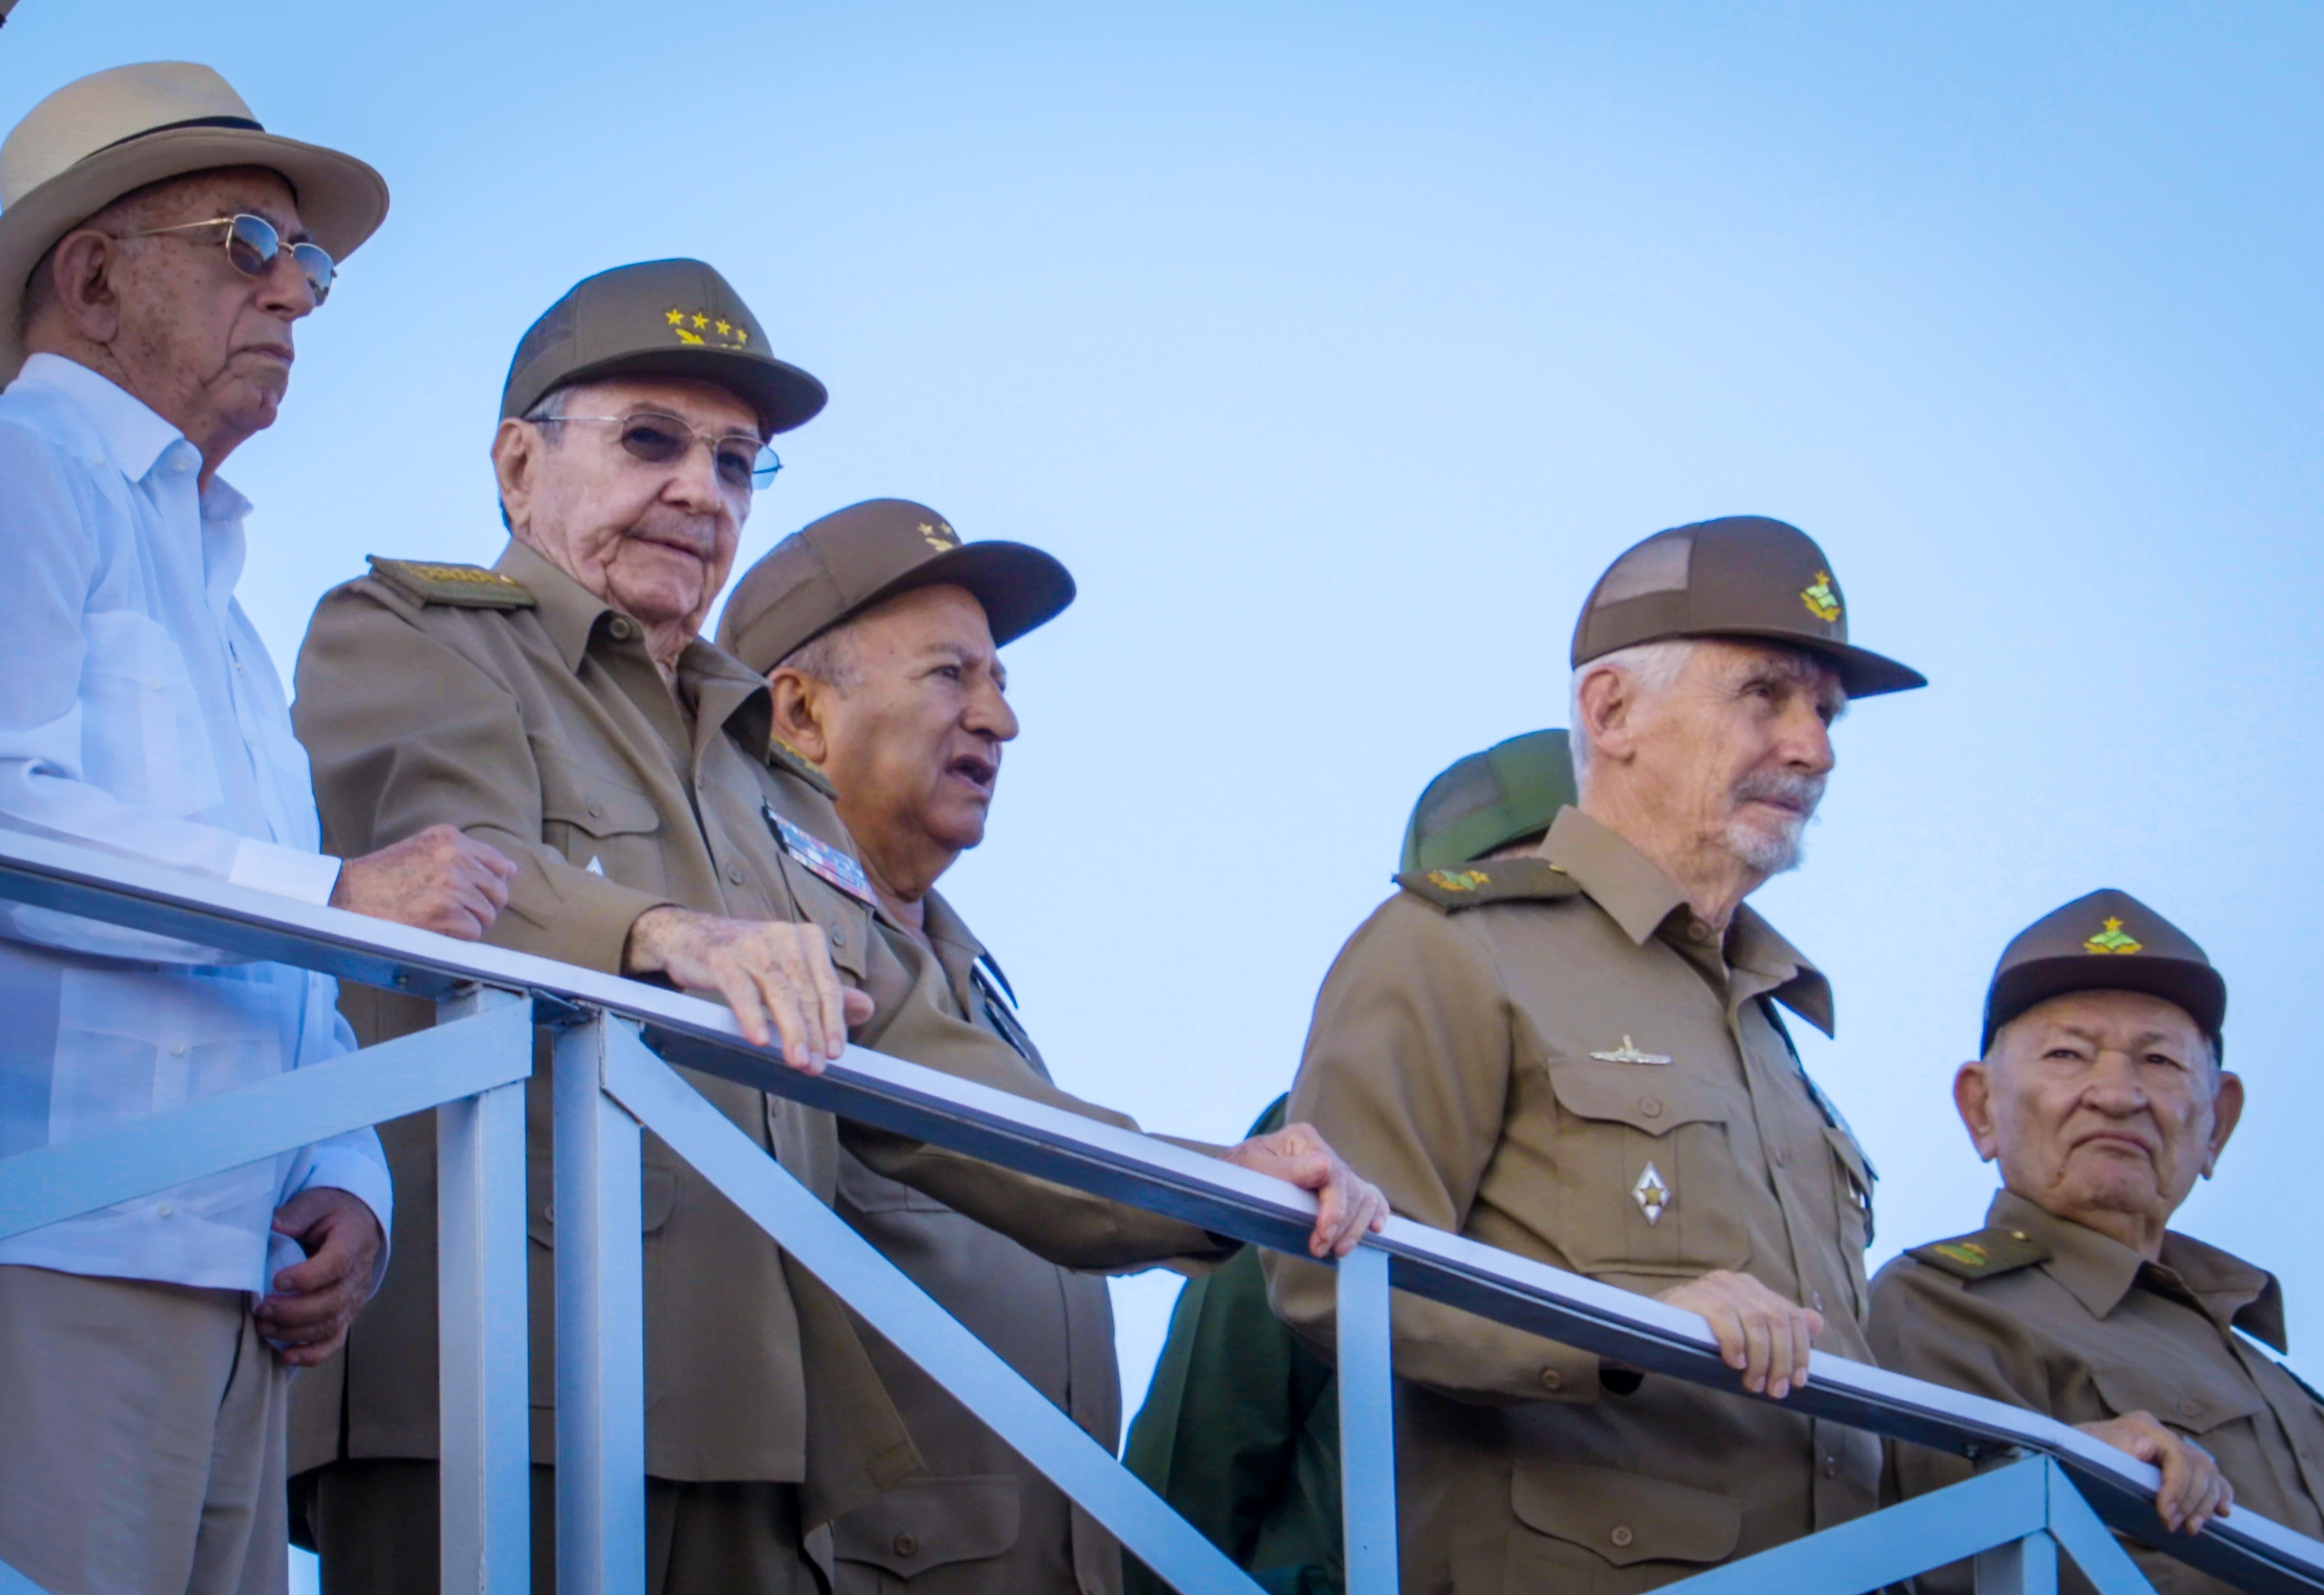 Cuban President Raul Castro (2nd-L), Cuban Vice President Jose Ramon Machado Ventura (L), Minister of the Revolutionary Armed Forces (FAR),General Leopoldo Cintra Frias (3rd-L) and Revolution Commanders, Ramiro Valdez (2nd-R) and Guillermo Garcia Frias (R) participate in a military parade in honor the death of Cuban dictator Fidel Castro at Revolution Square in Havana, on Jan. 2, 2017. (ADALBERTO ROQUE/AFP/Getty Images)